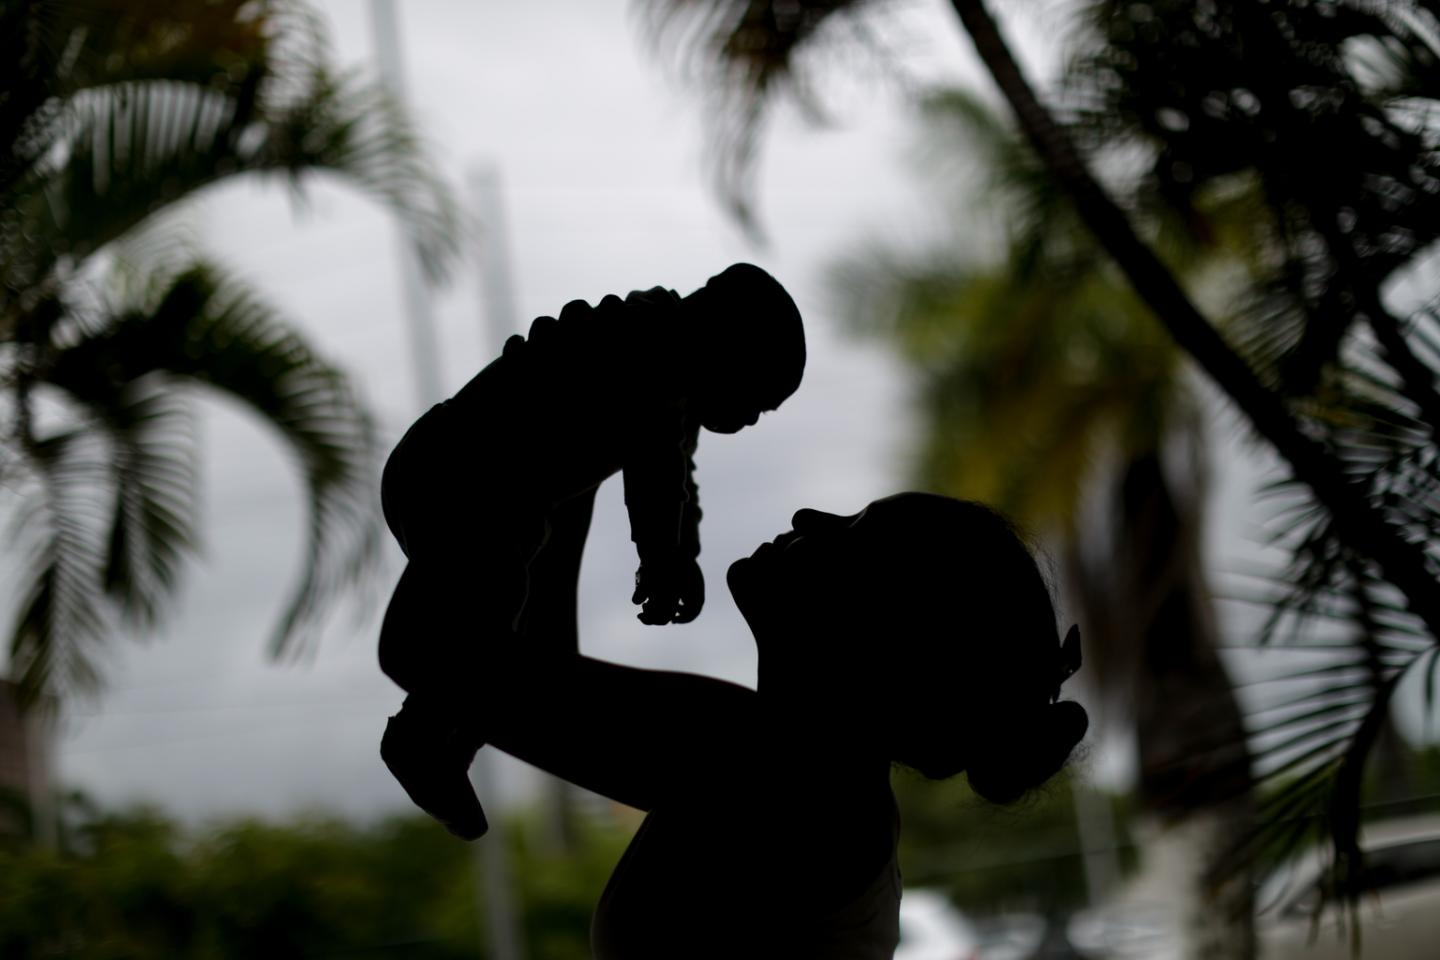 Alice,15 years old, holds her a 4-month old baby born with microcephaly in Recife